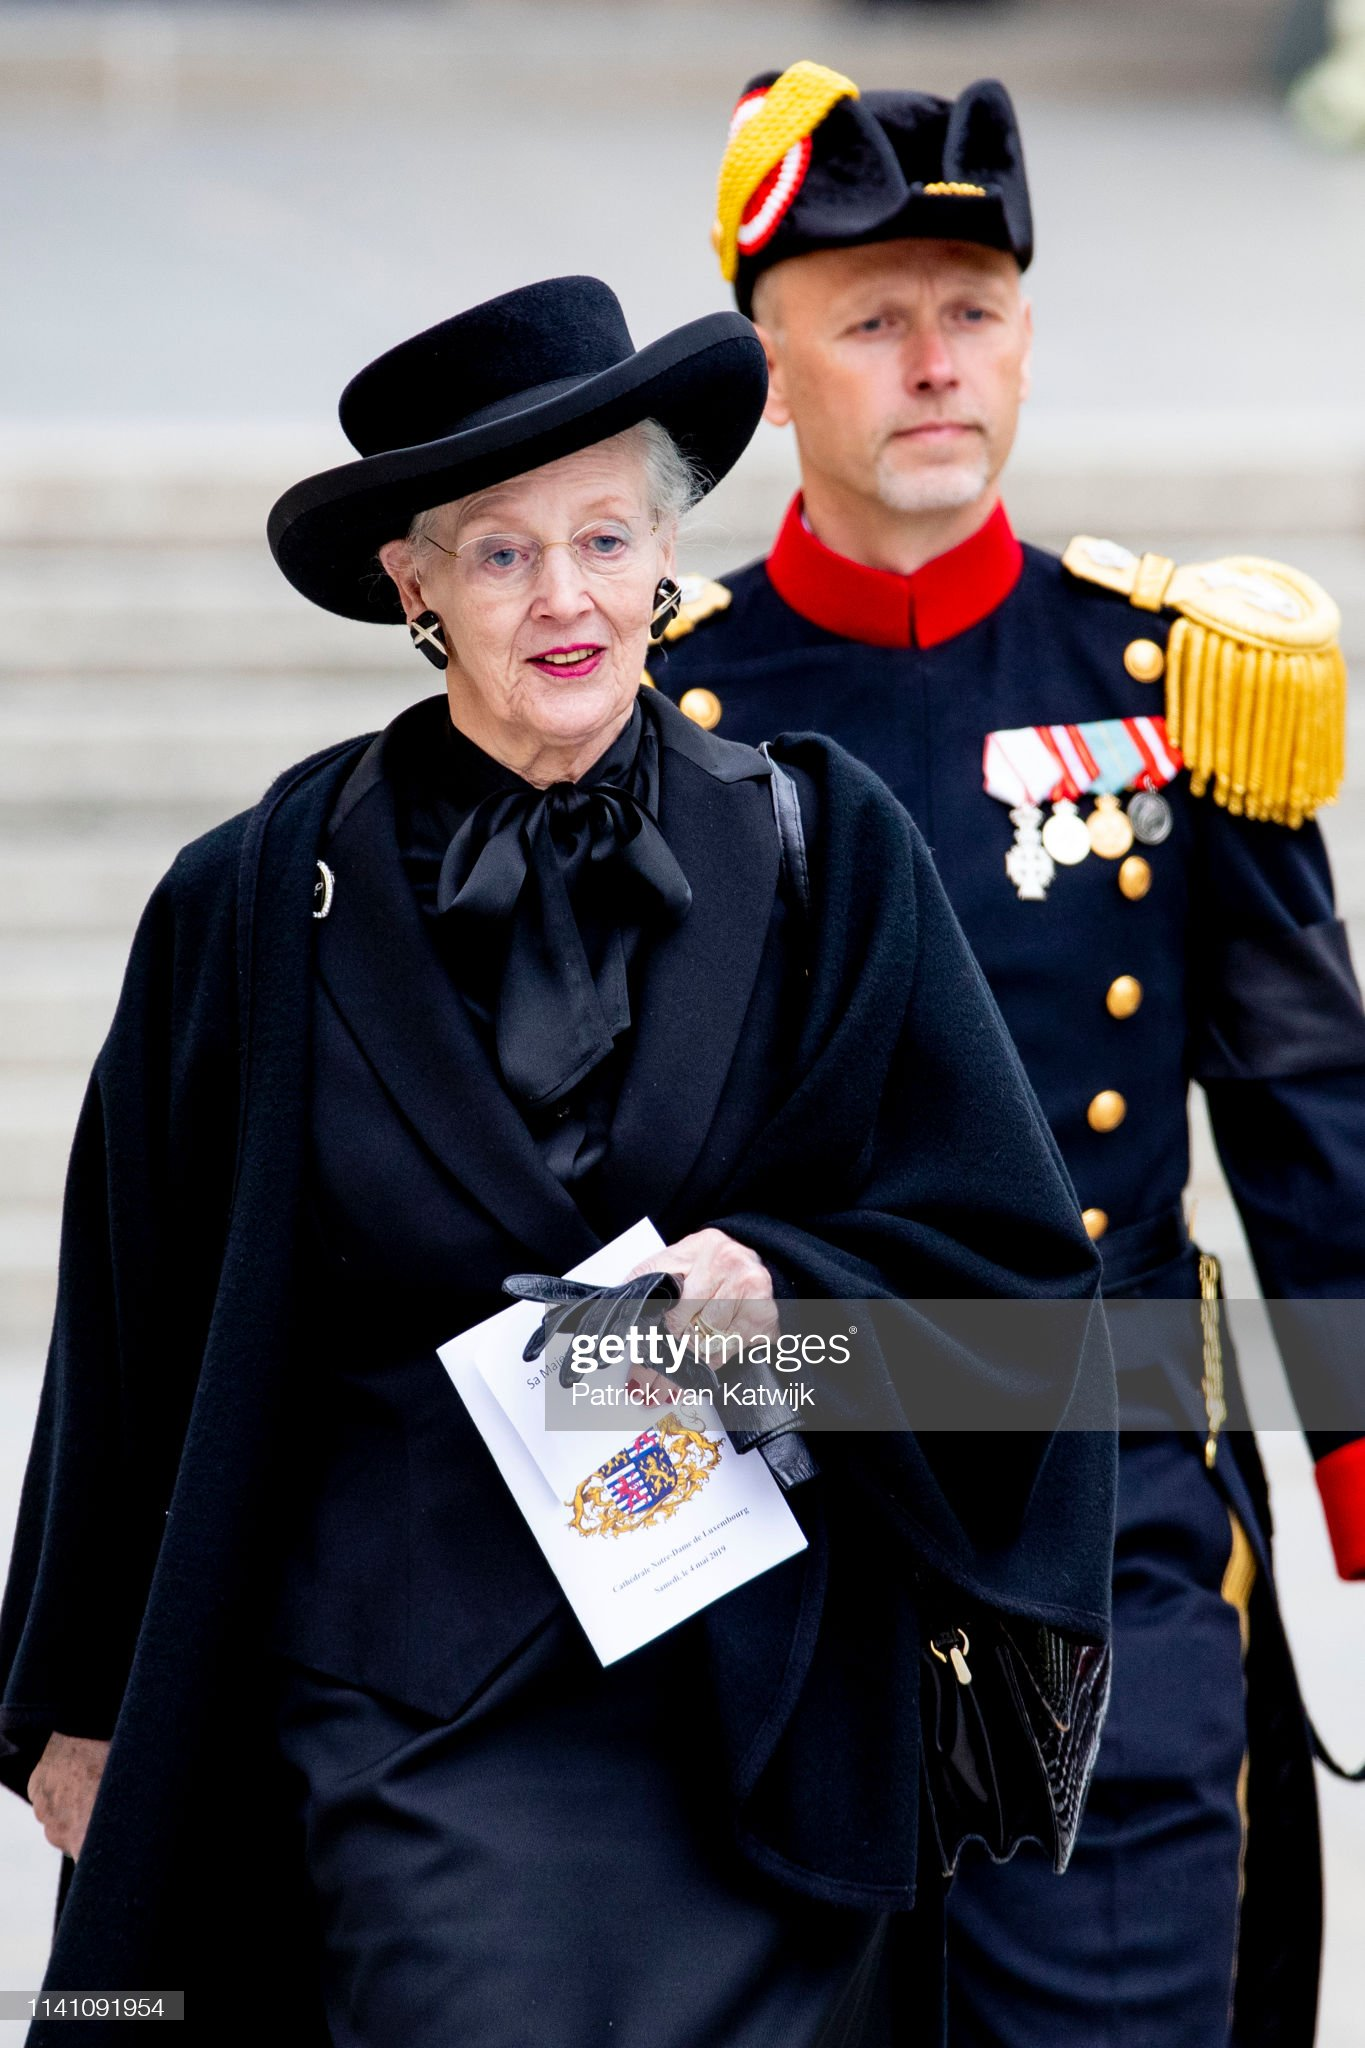 Похороны Великого Герцога Жана https://media.gettyimages.com/photos/queen-margrethe-of-denmark-attends-the-funeral-of-grand-duke-jean-on-picture-id1141091954?s=2048x2048